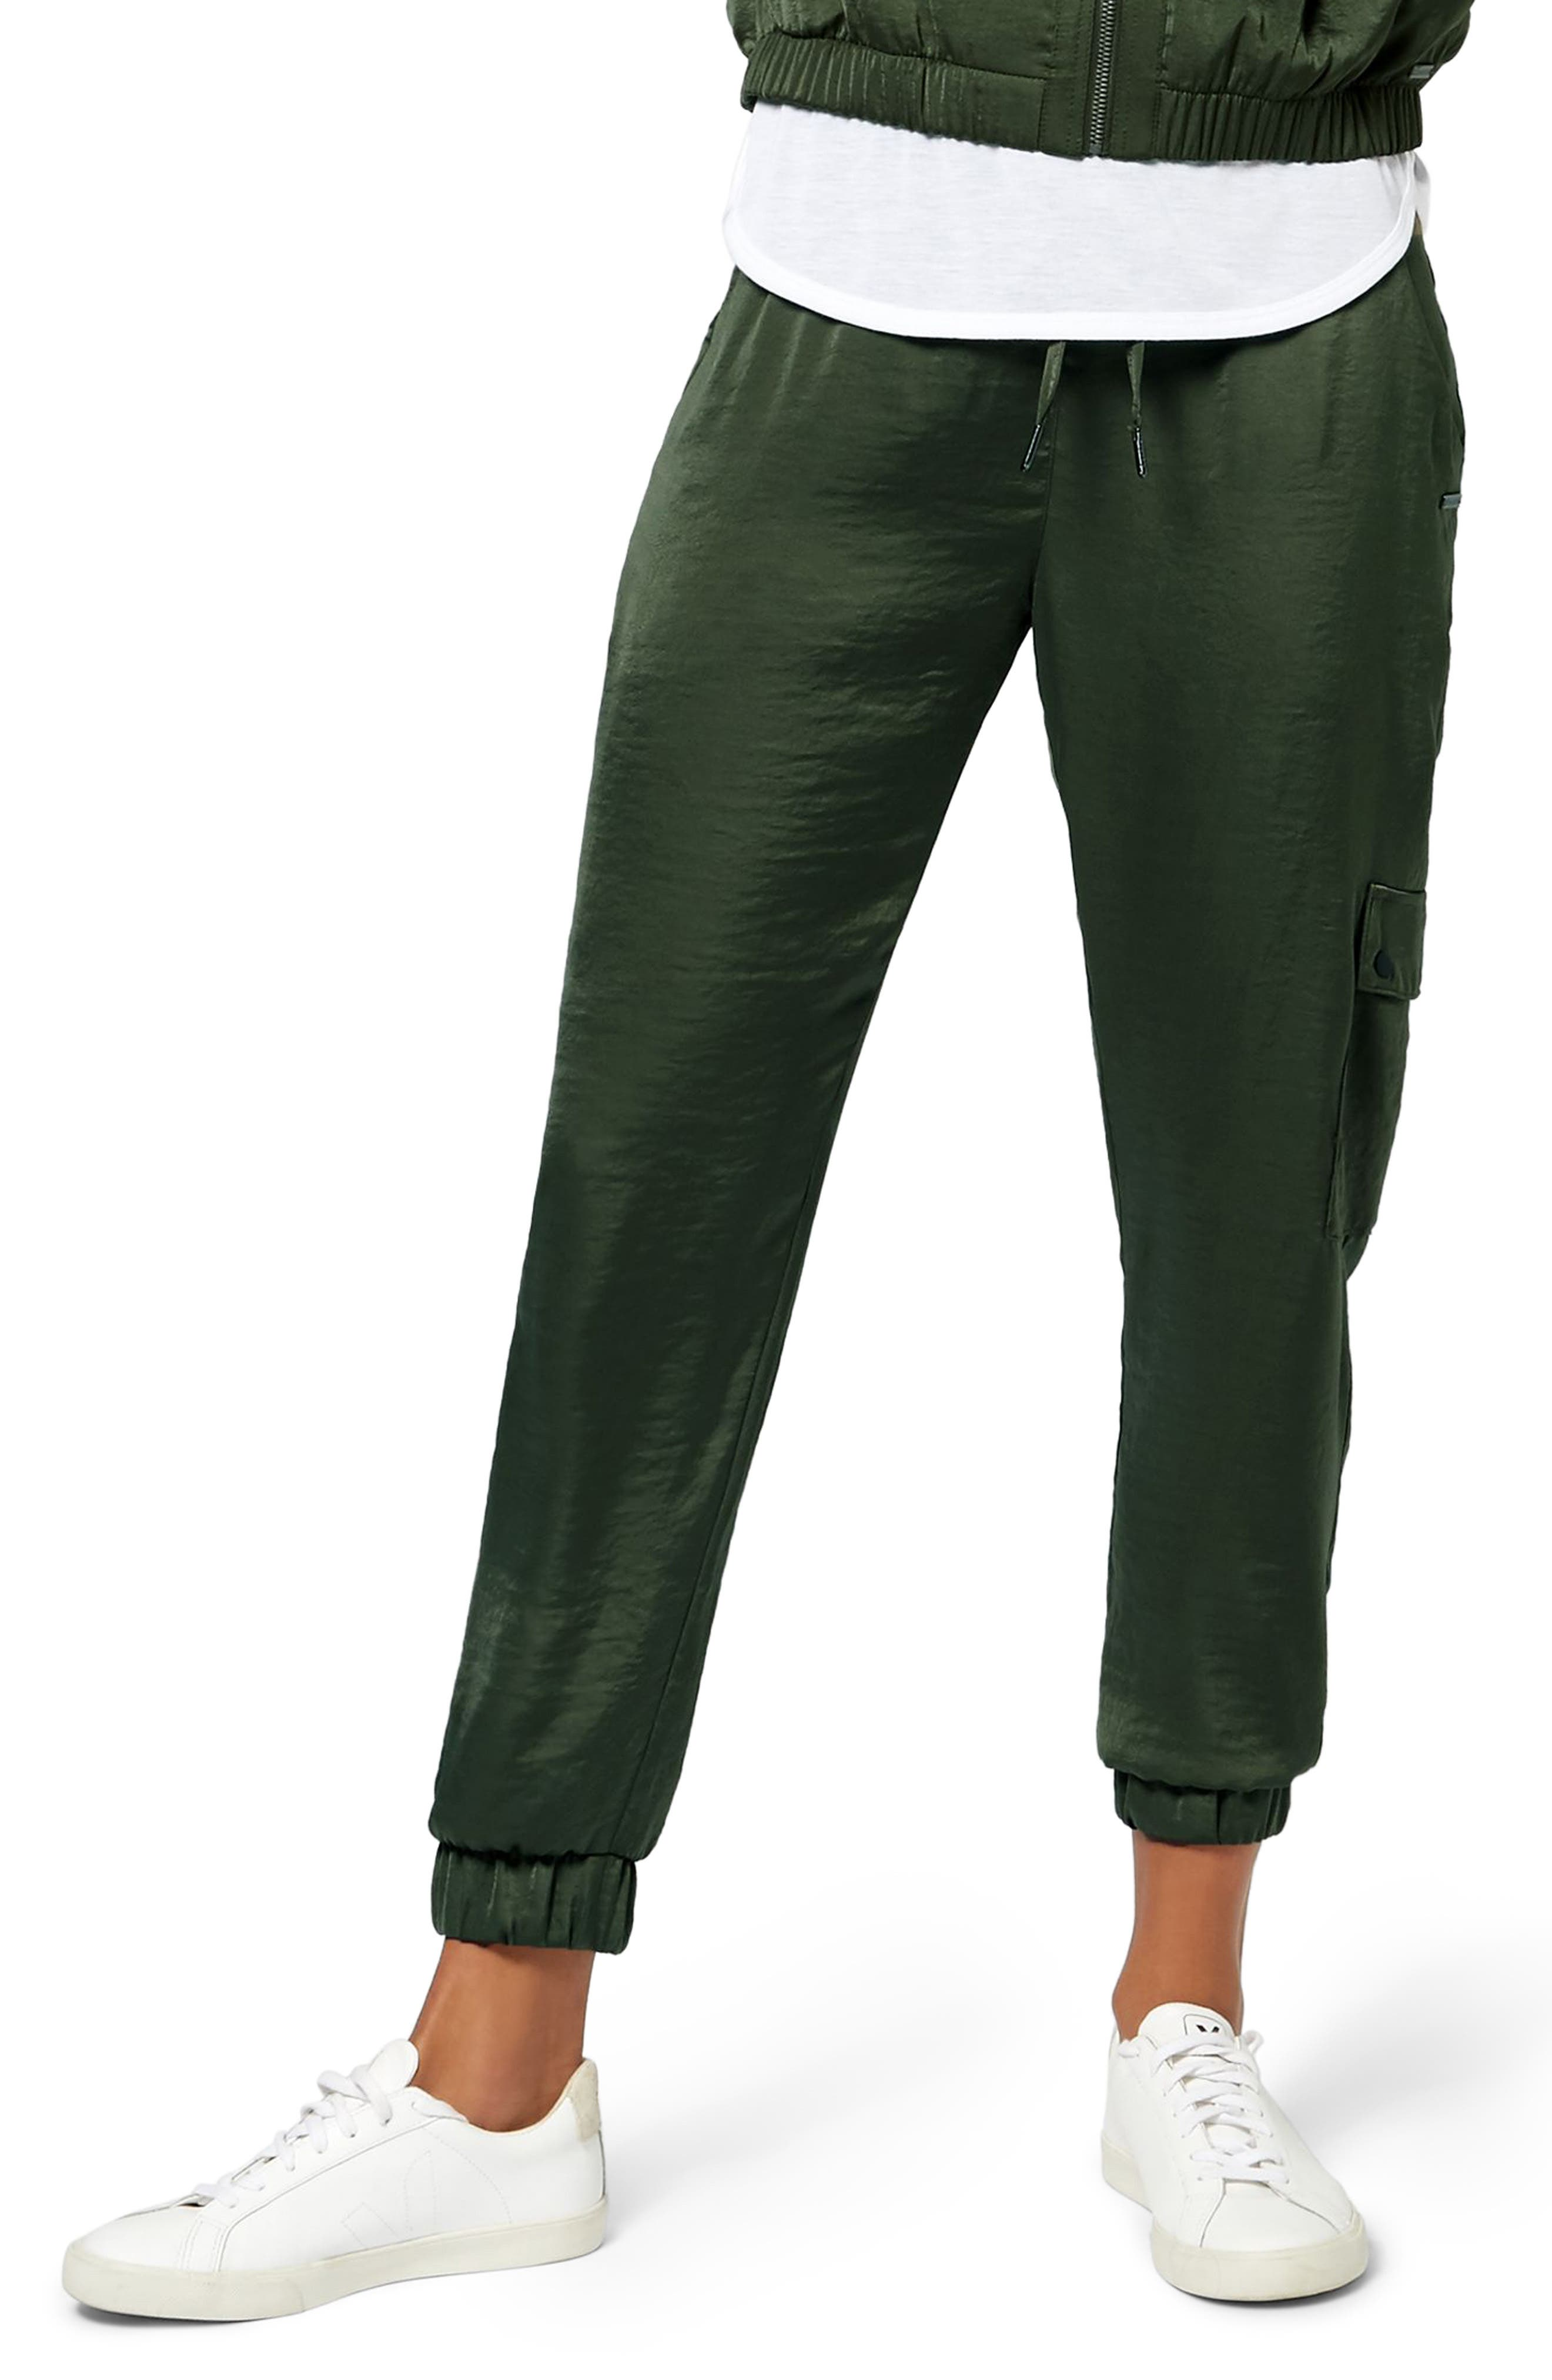 Cargo Luxe Ankle Pants,                             Main thumbnail 1, color,                             OLIVE